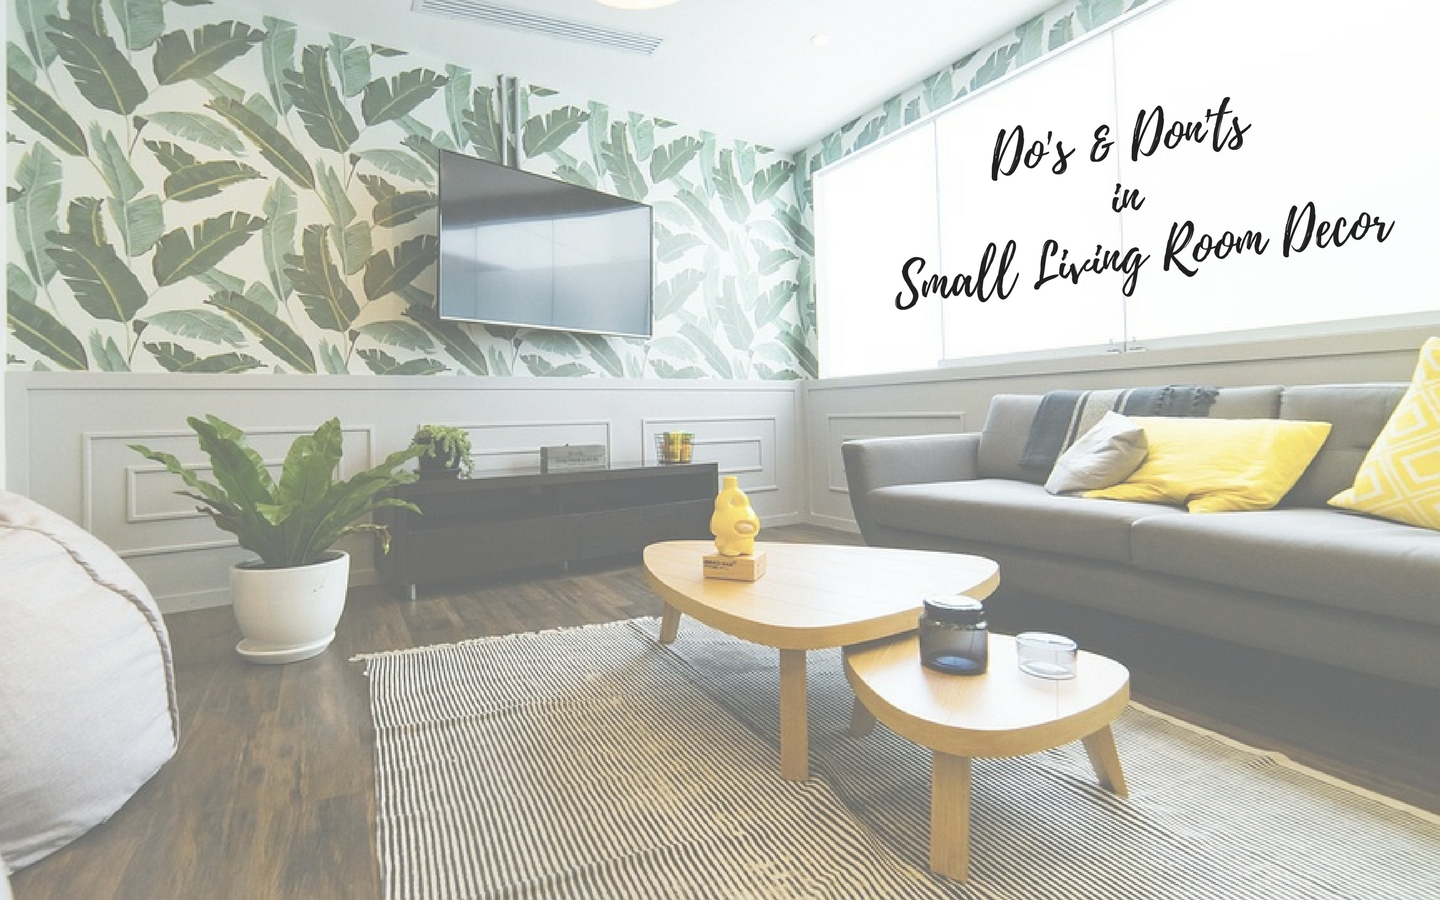 Top image small living room decor